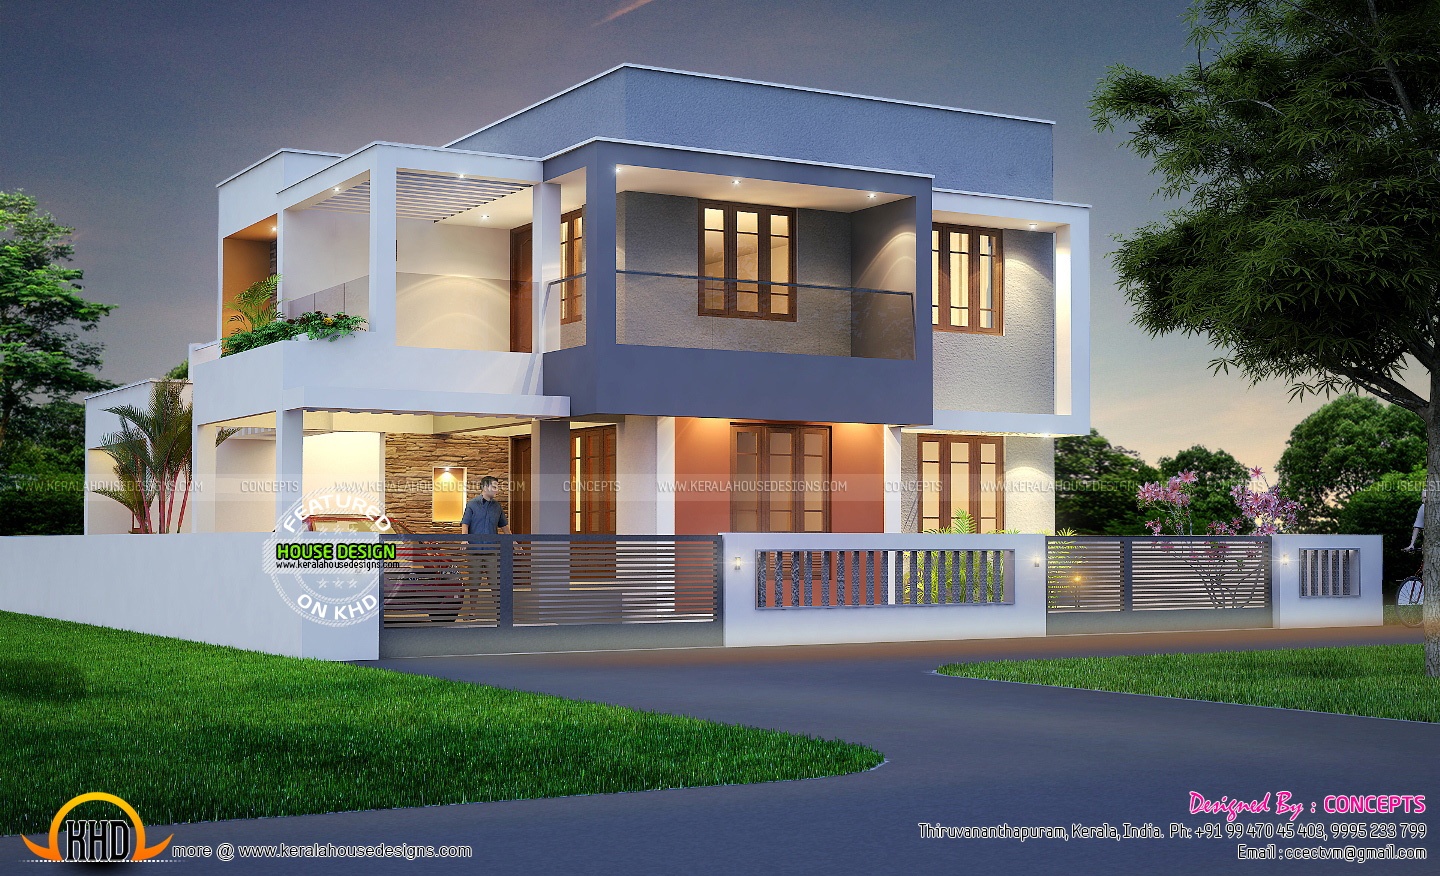 4 bhk house with plan. 4 bhk house with plan   Kerala home design and floor plans